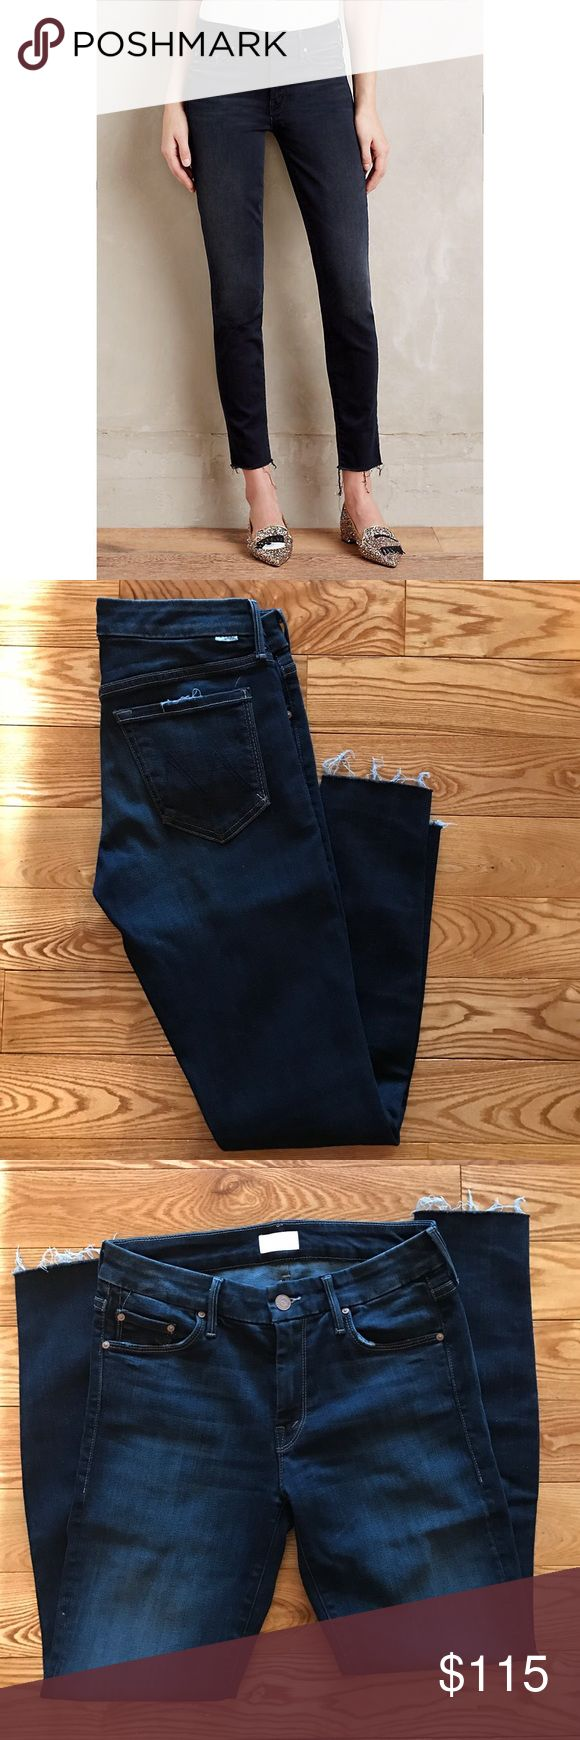 Mother Looker Ankle Fray Jeans New without tags, never worn Mother Jeans in Dark denim, medium rise, size 27. This is a skinny fit with frayed ankles. Comfortable and stylish! Anthropologie Jeans Ankle & Cropped